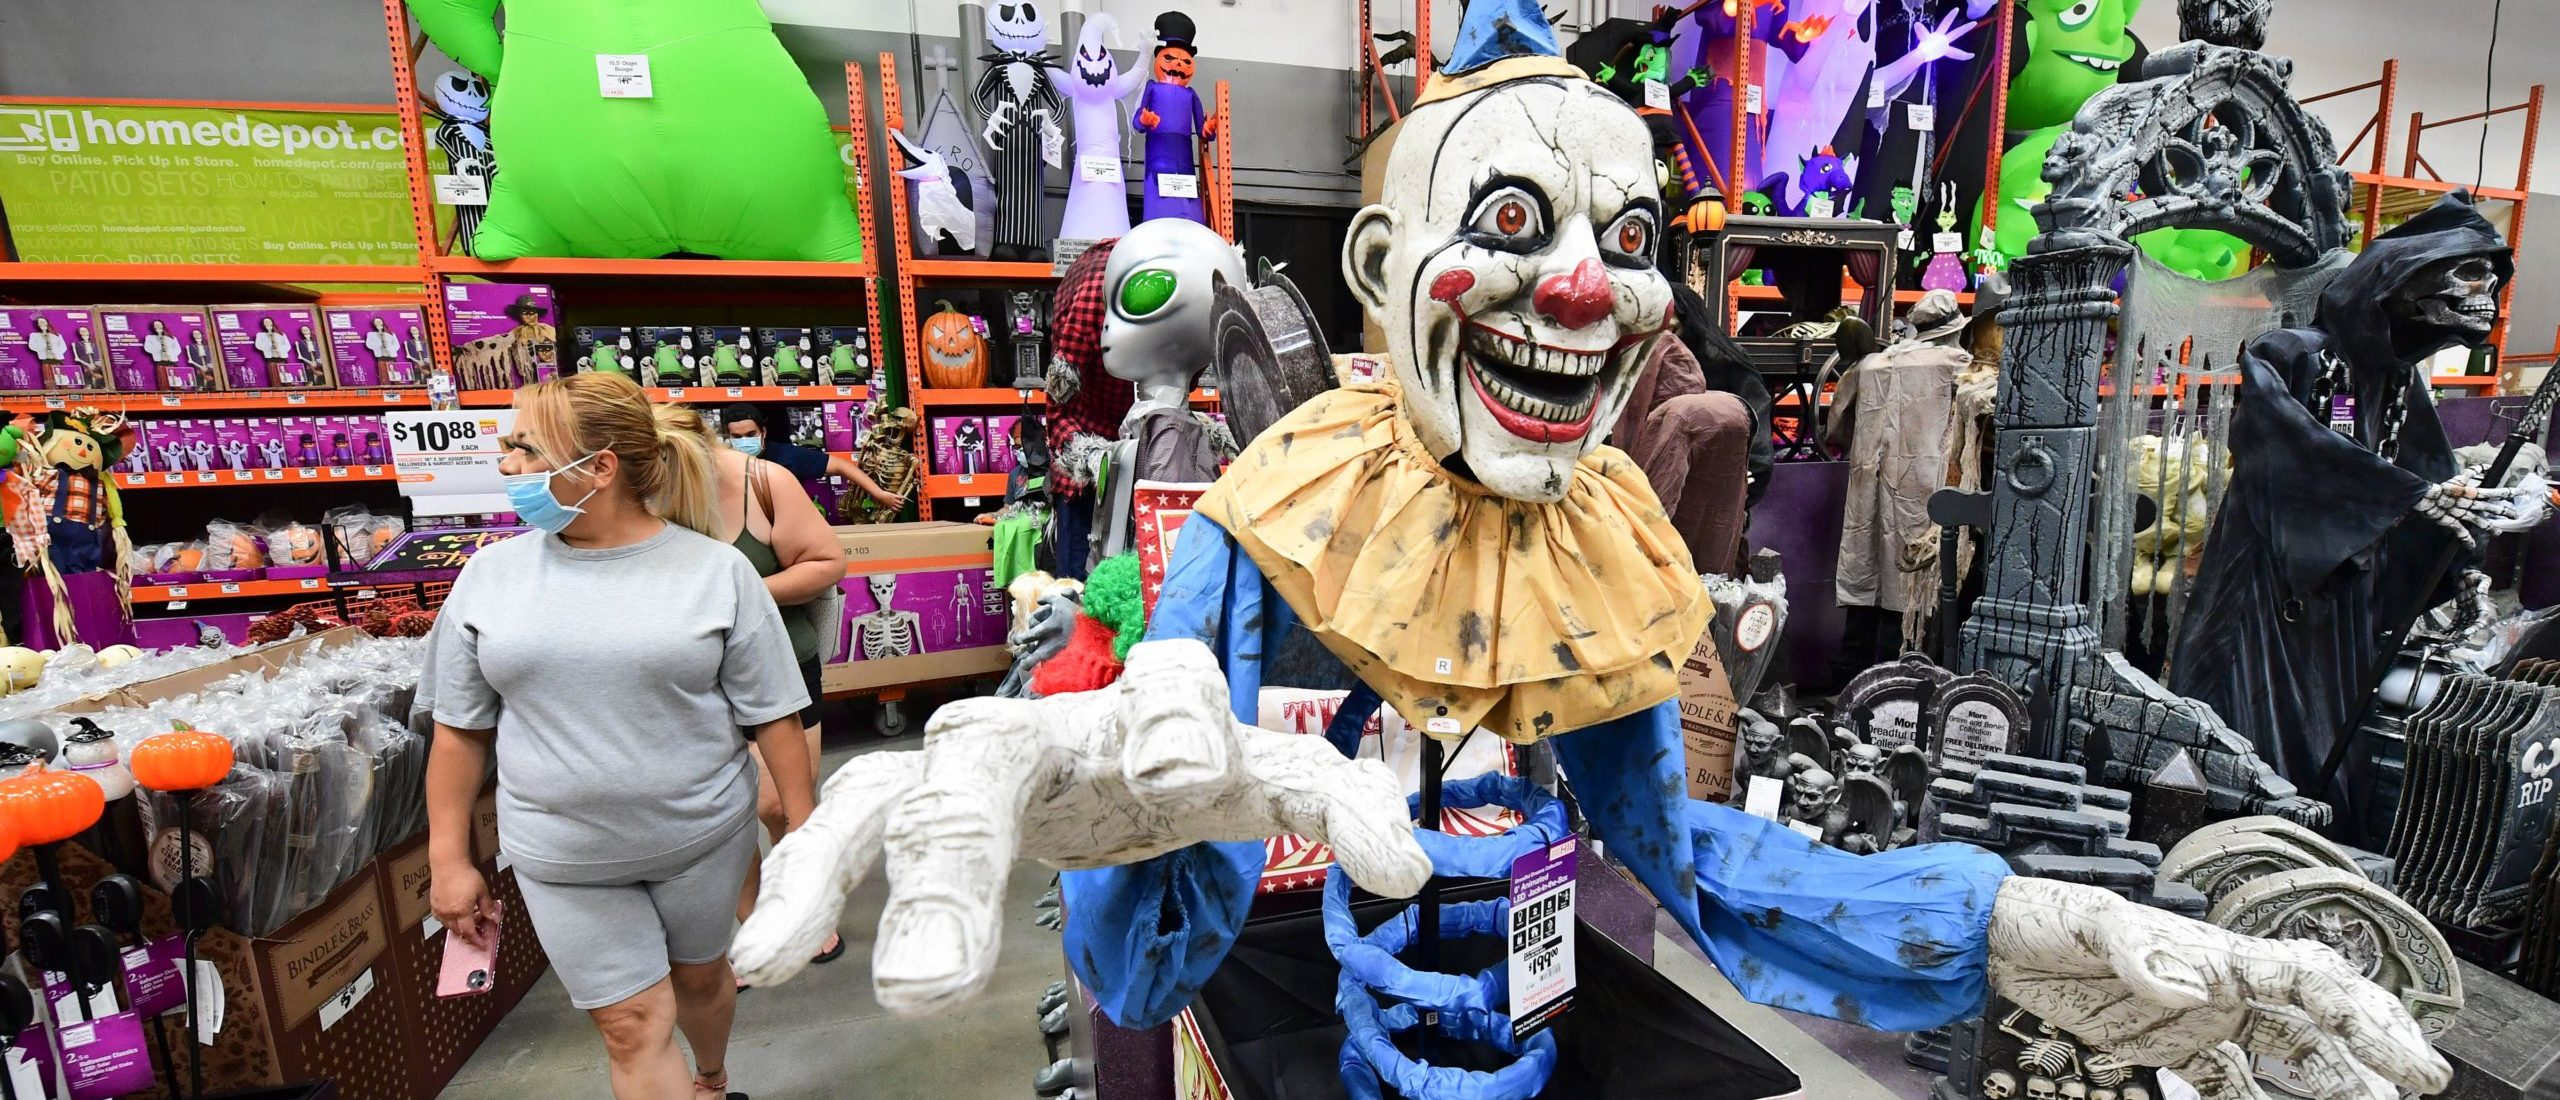 People shop for Halloween items at a home improvement retailer store in Alhambra, California on September 9, 2020. (Photo by Frederic J. BROWN / AFP) (Photo by FREDERIC J. BROWN/AFP/Getty Images)